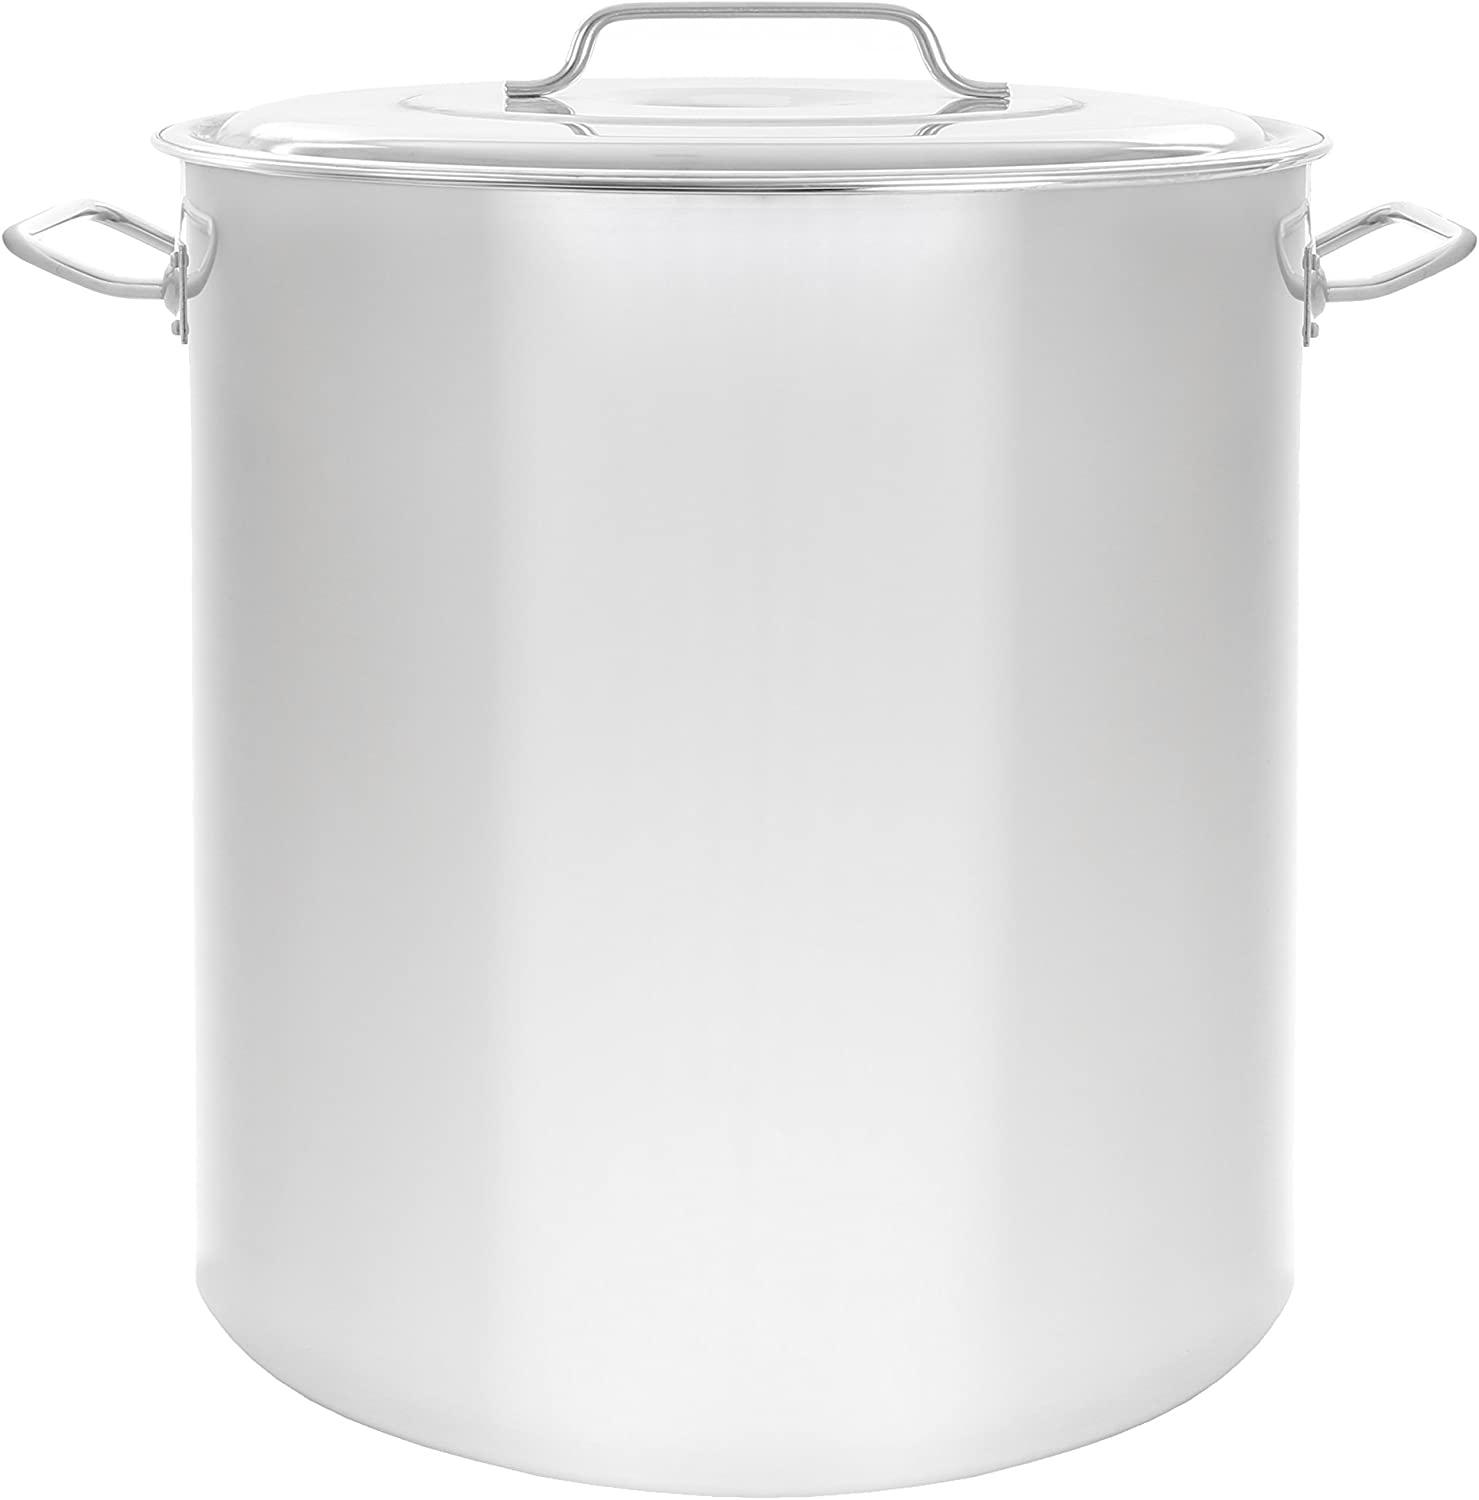 Concord Cookware Stainless Steel Stock Pot Kettle, 60-Quart